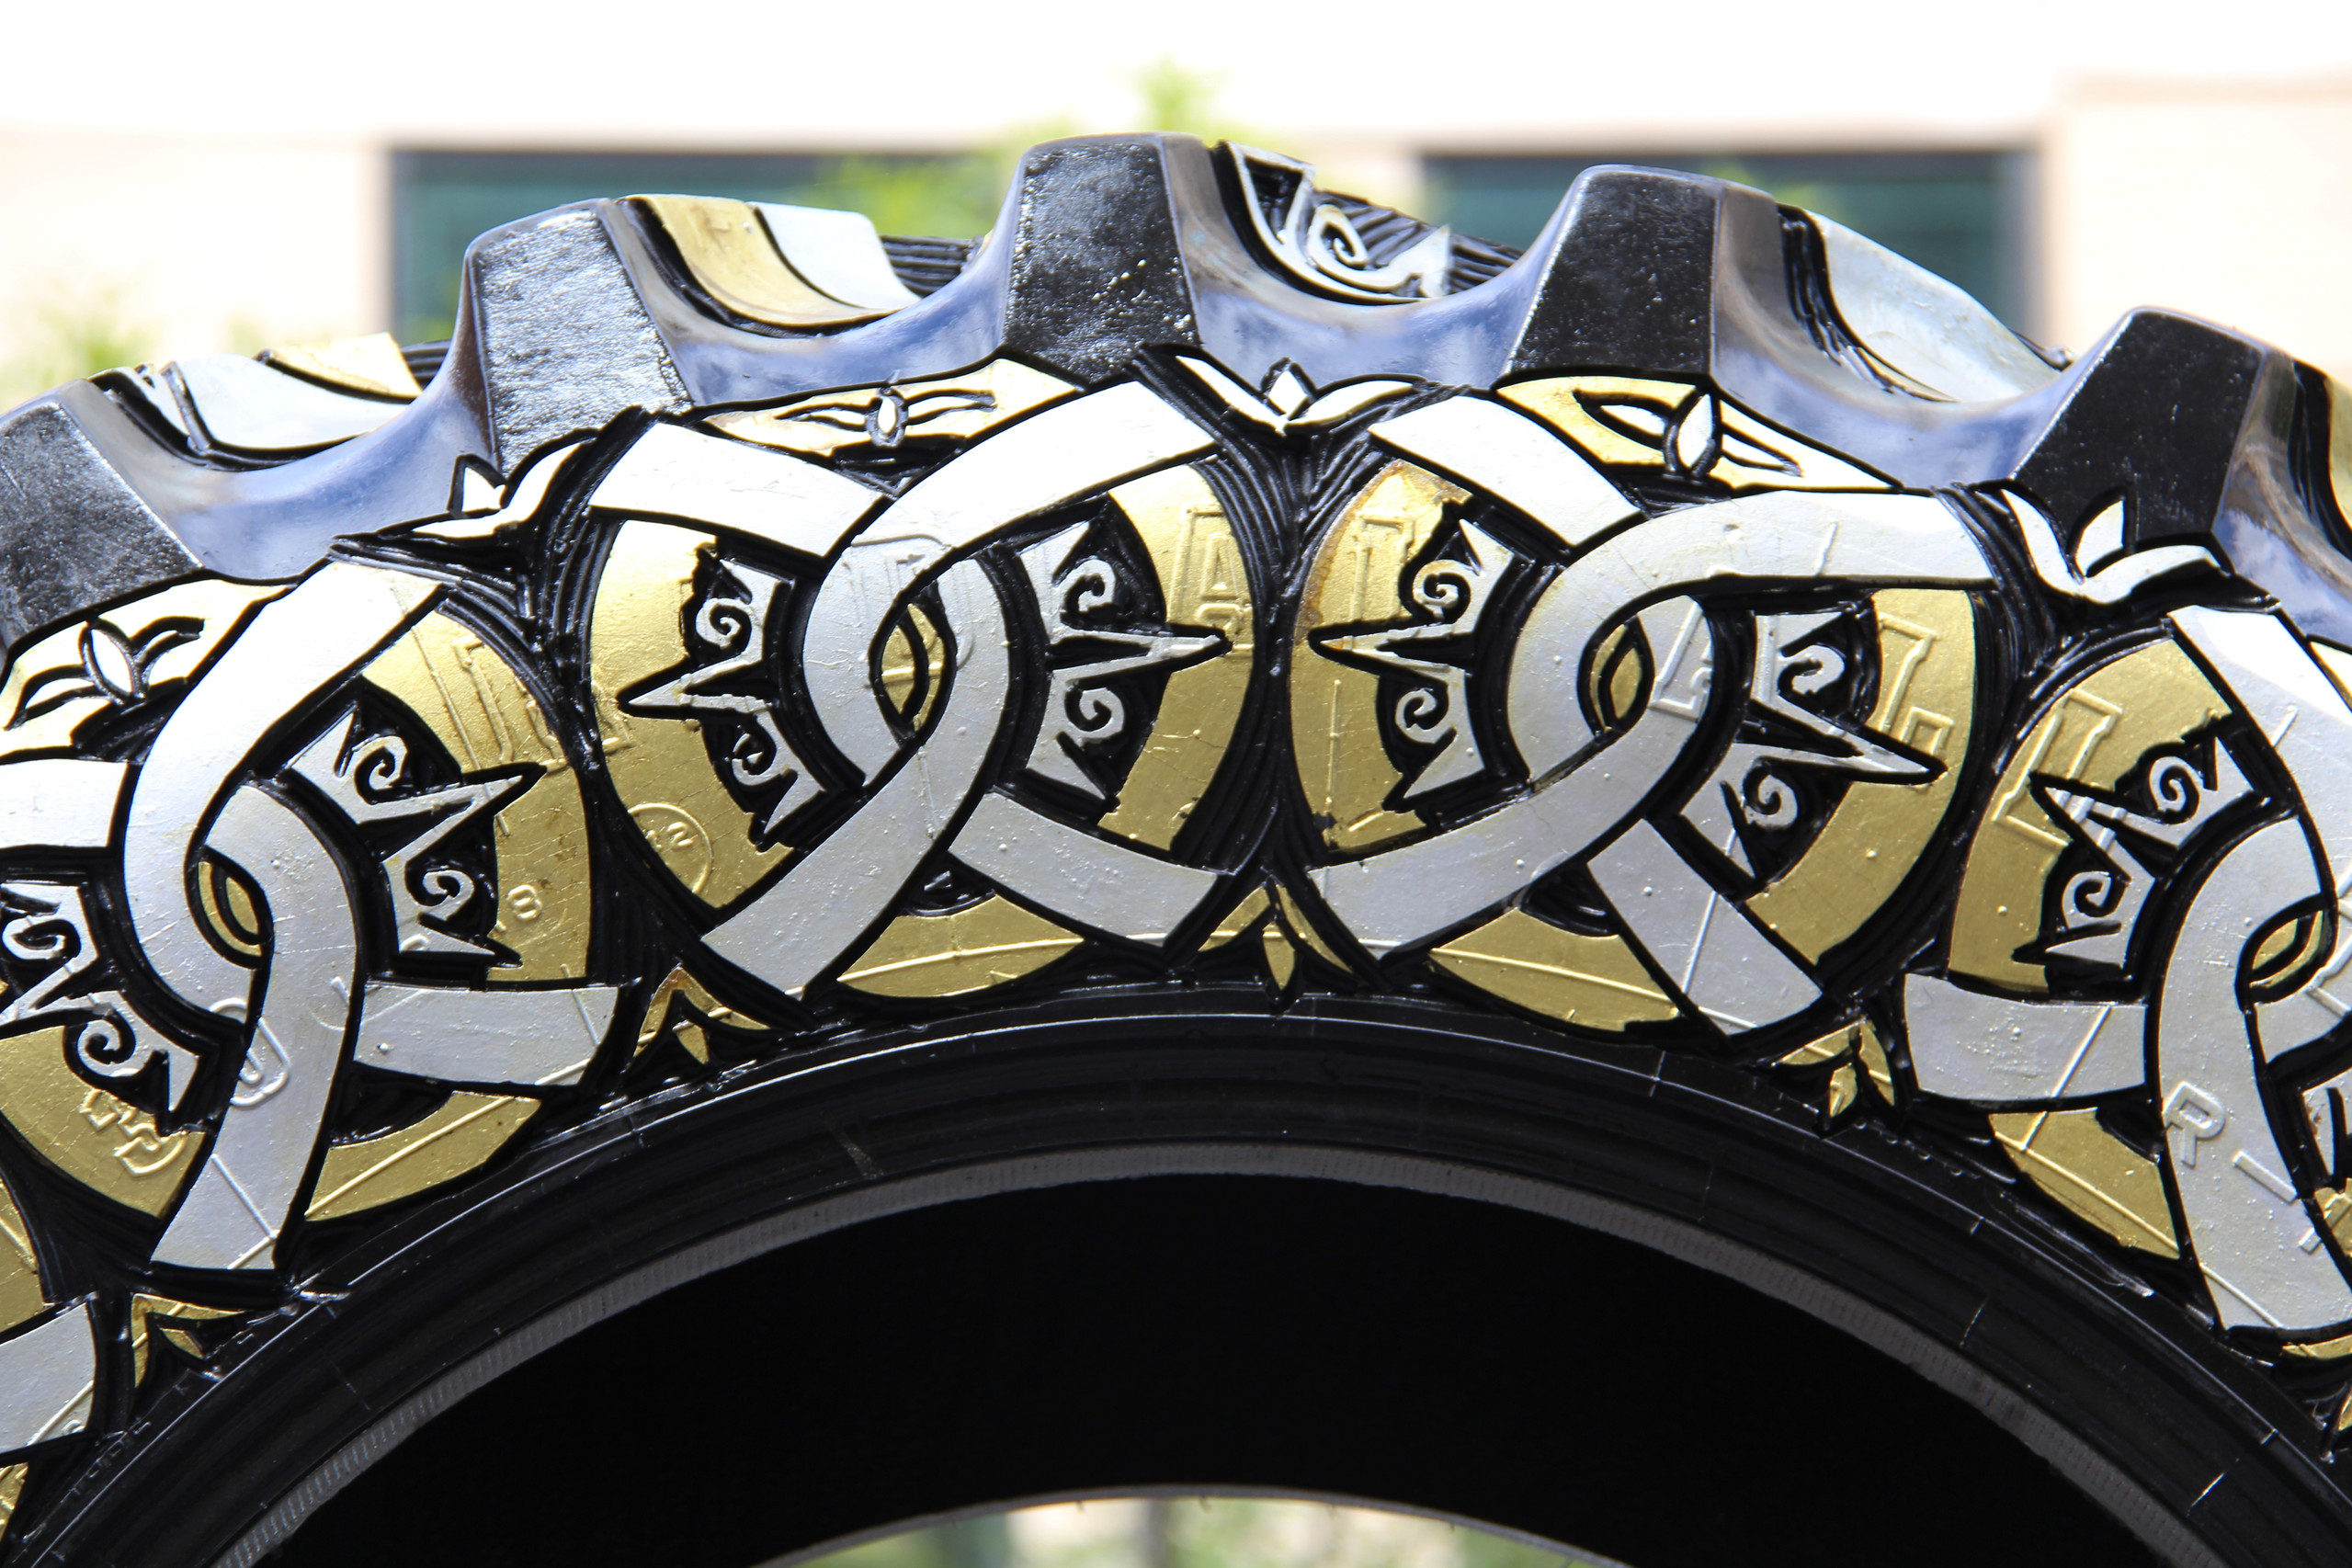 Close-up photograph of a sculpture made of a truck tire carved with circular designs and painted gold and silver